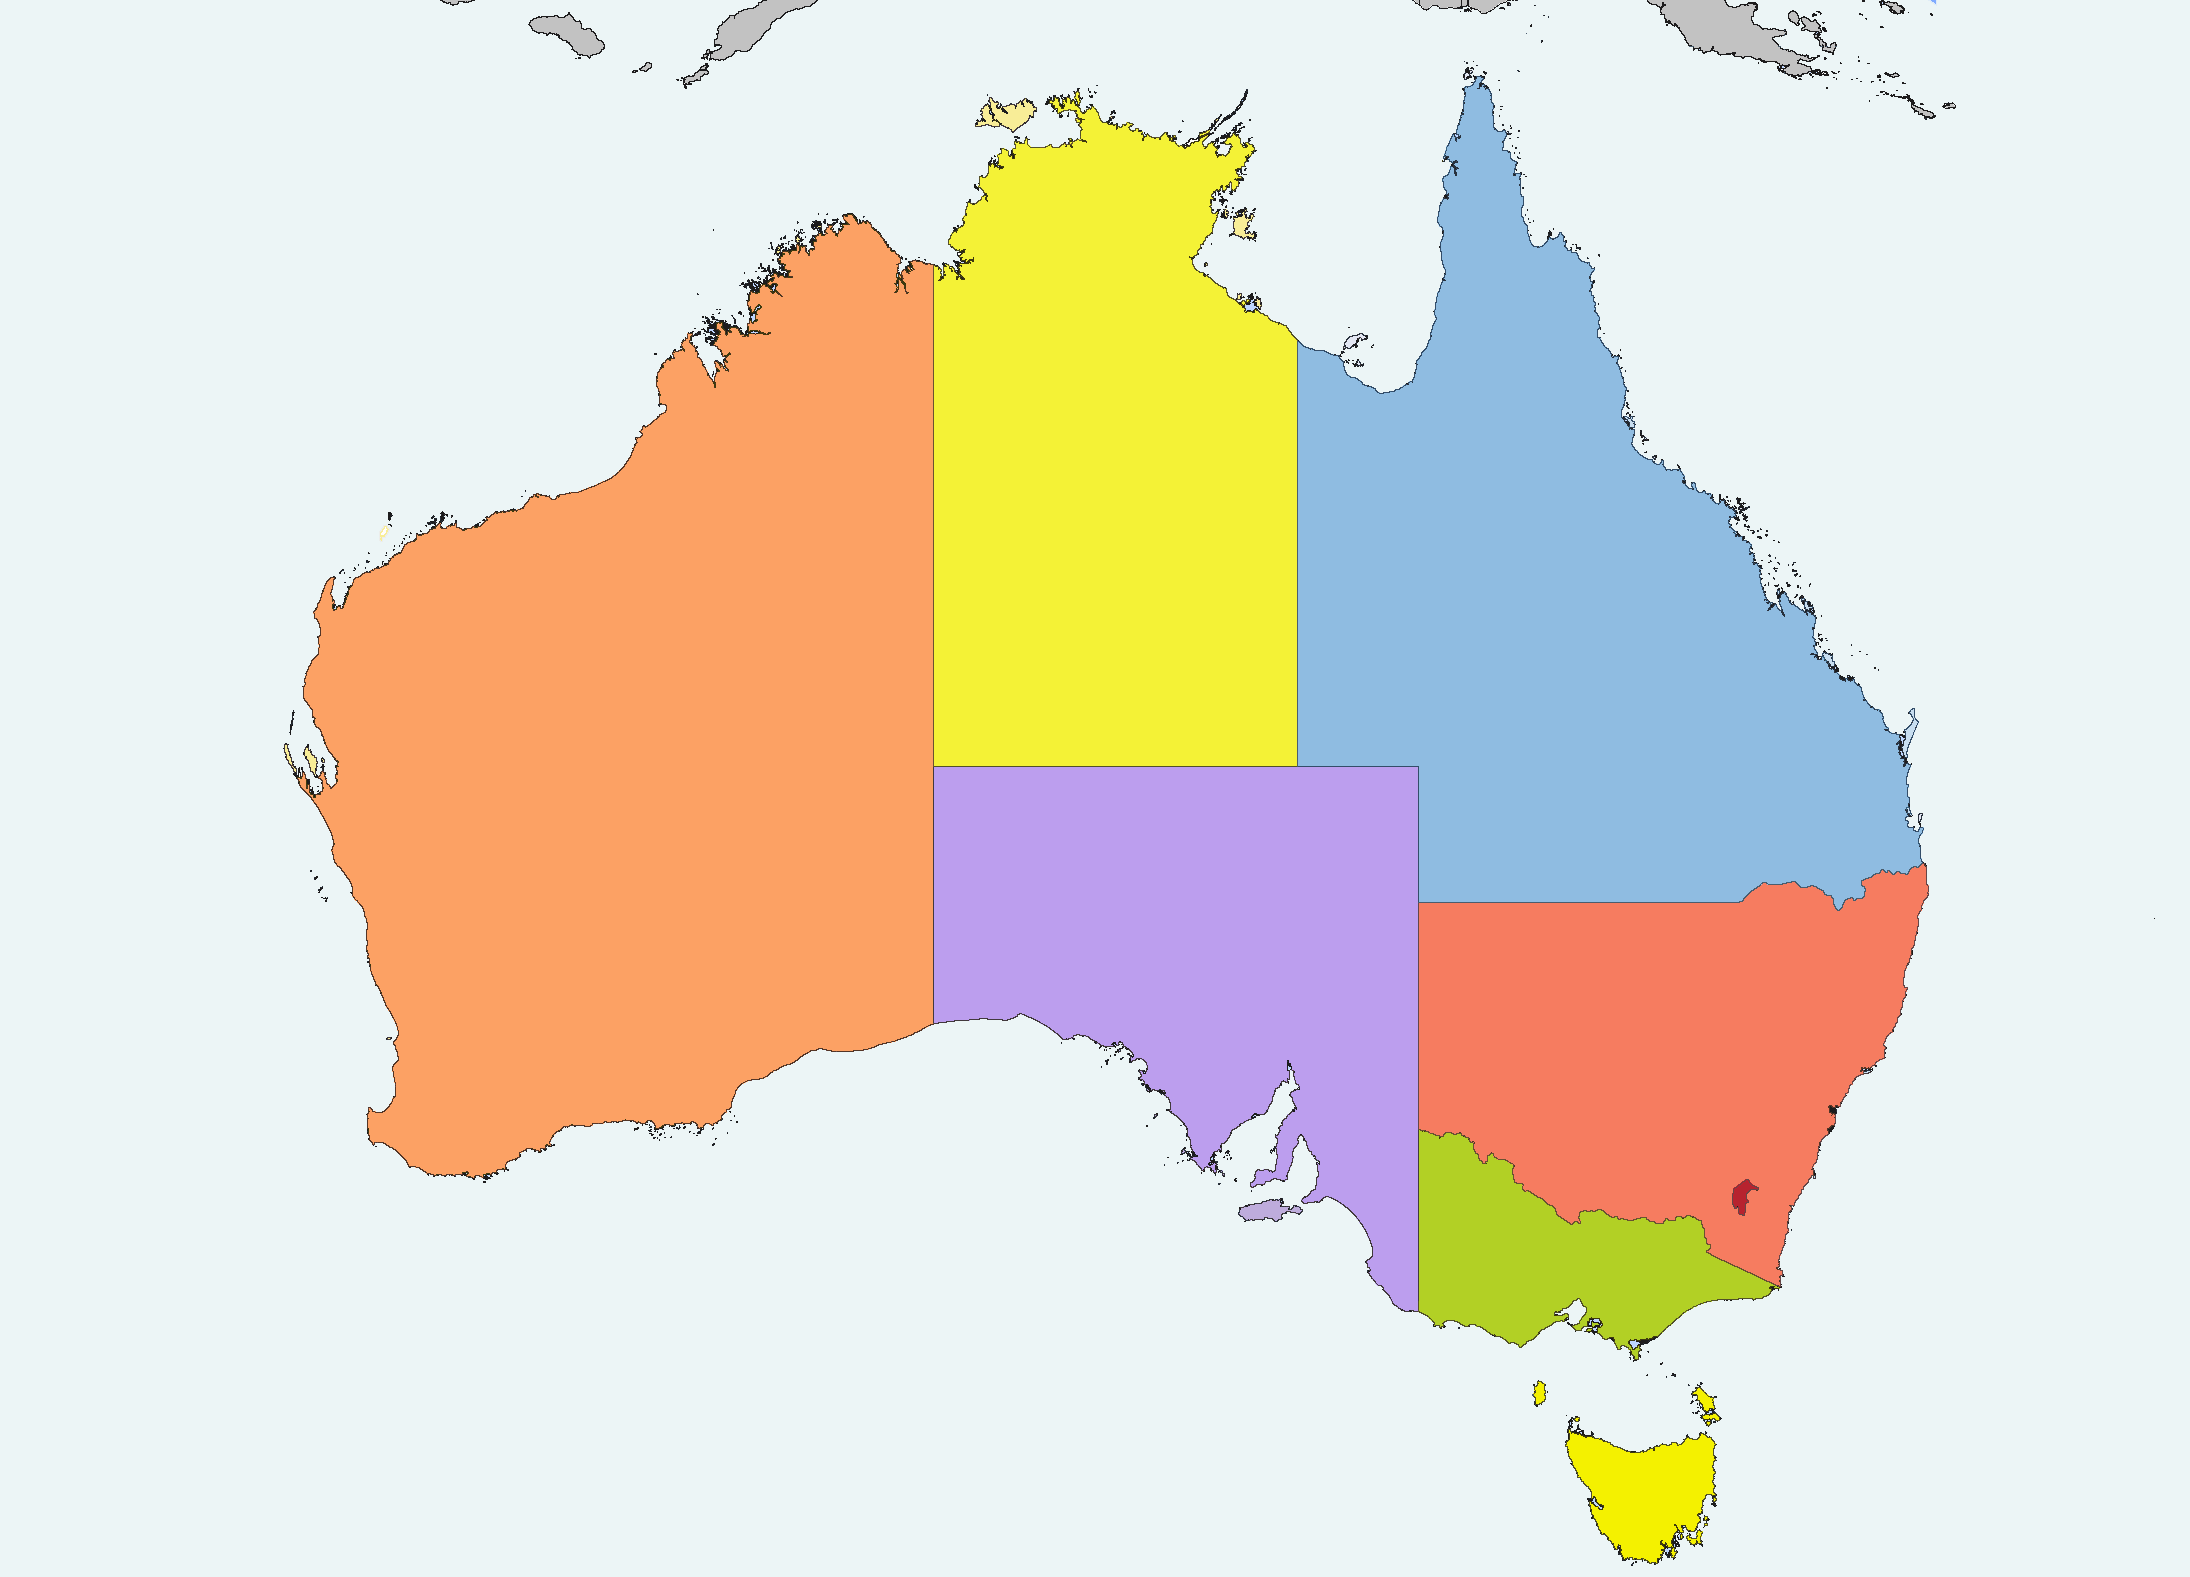 Australia Location Map.Australia Location Map Recolored Mapsof Net